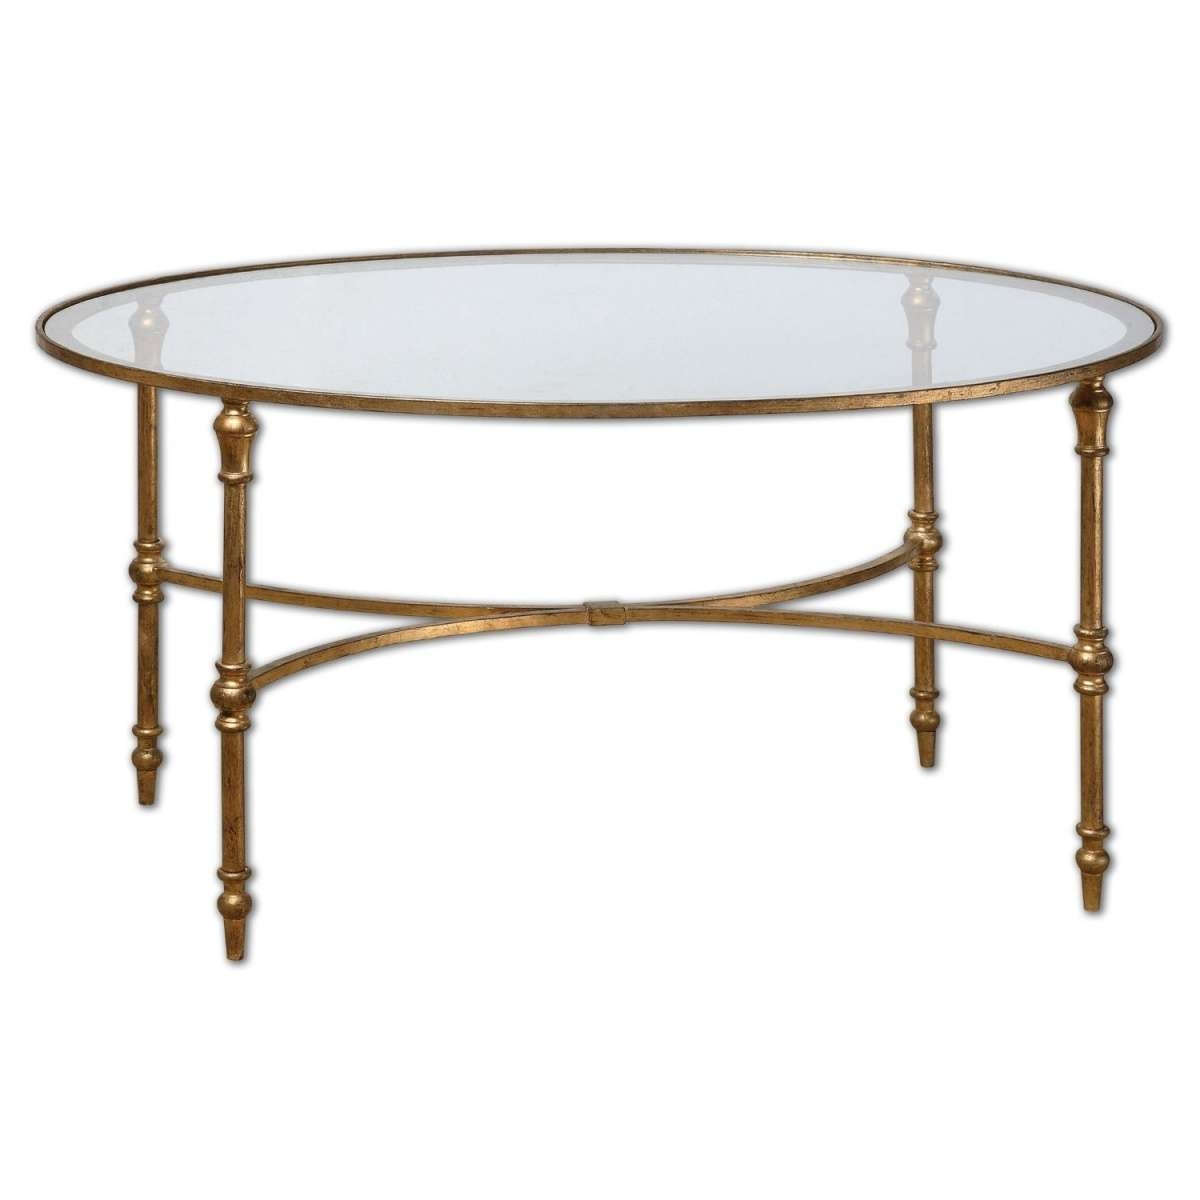 Popular Metal Glass Coffee Tables For Coffee Tables : Fashionable Inspiration All Glass Coffee Table (View 20 of 20)